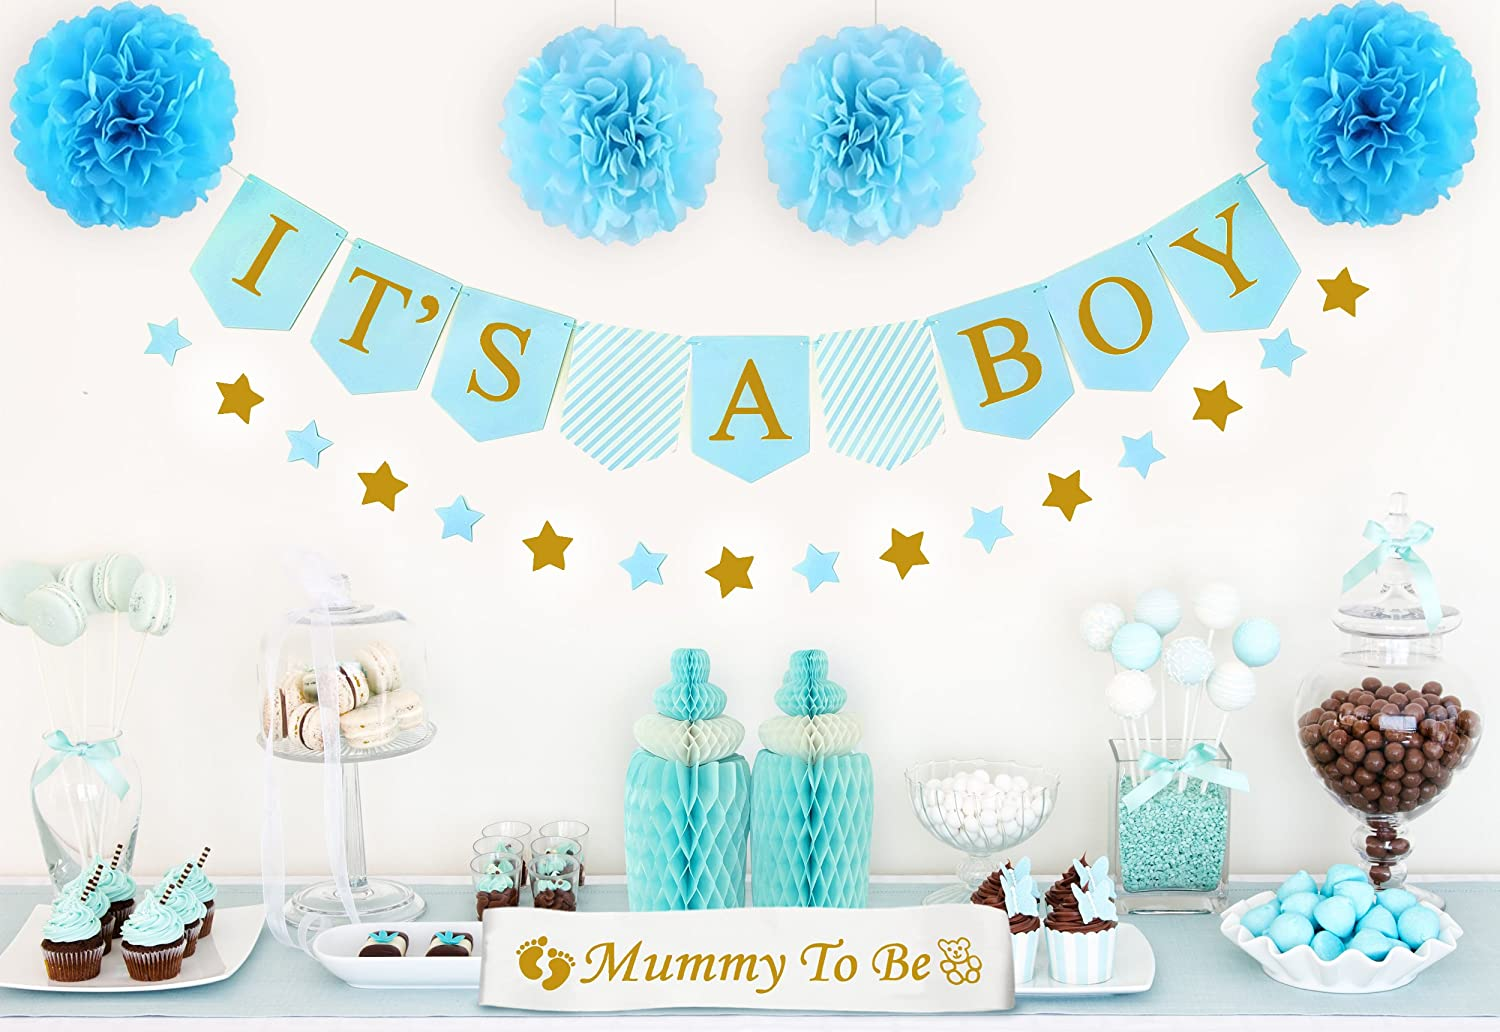 Baby Shower Decorations for Boy - Blue and Gold It's a Boy Banner, Baby  Bottle Centerpieces, Star Garlands, Paper Pom Poms, Bonus Mommy Sash |  Party Supply ...